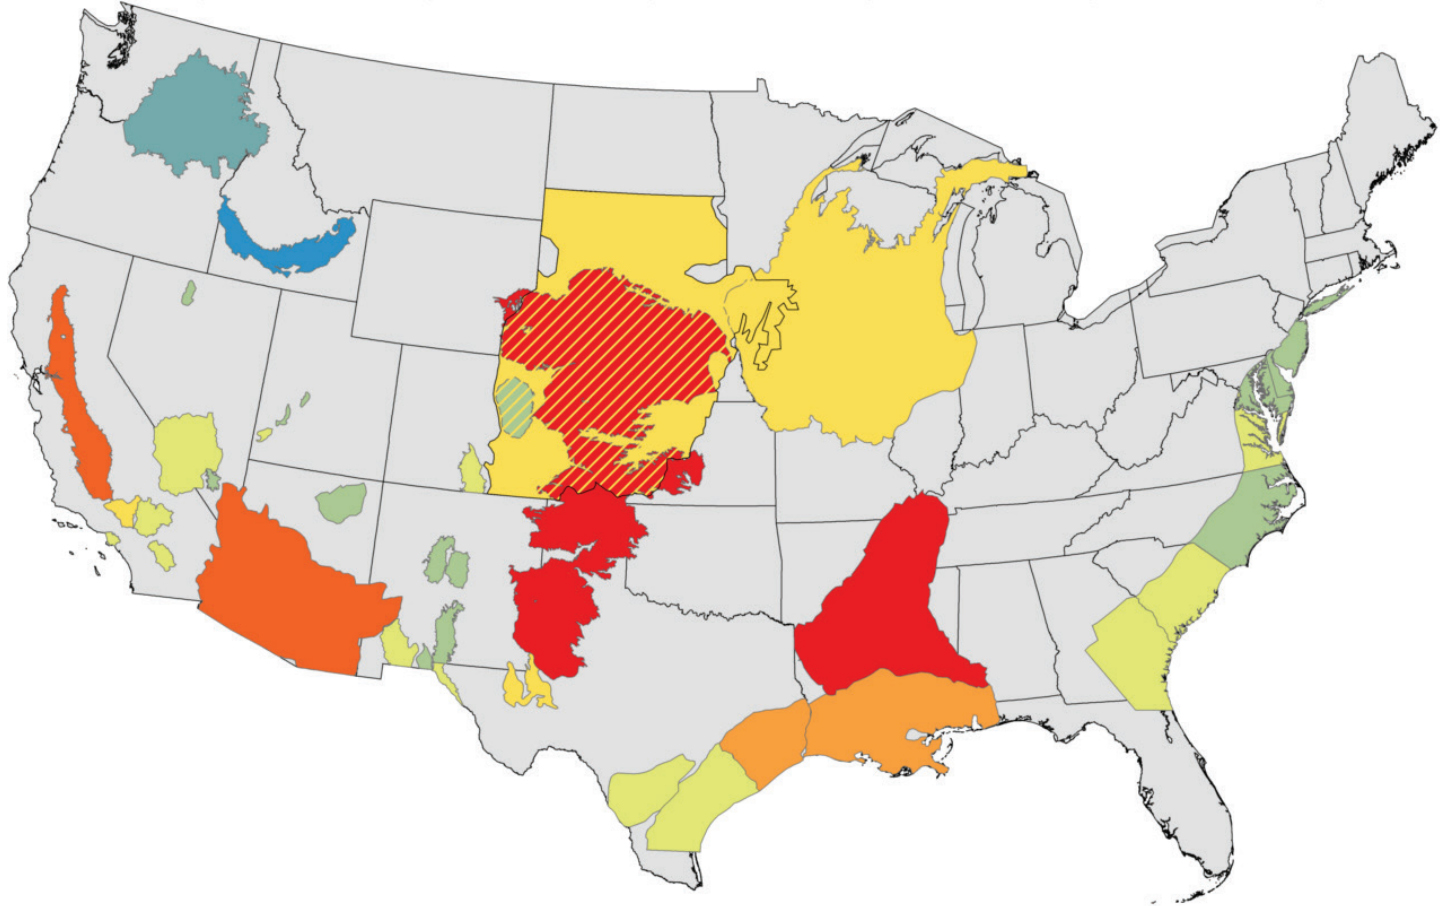 Total groundwater depletions (in cubic km) for major aquifers in the contiguous U.S. from 1900-2008. Red 150-400; dark orange 50-150; light orange 25-50; dark yellow 10-25; light yellow 3-10; green 0-3; blues indicate net recharge. Image Credit: USGS